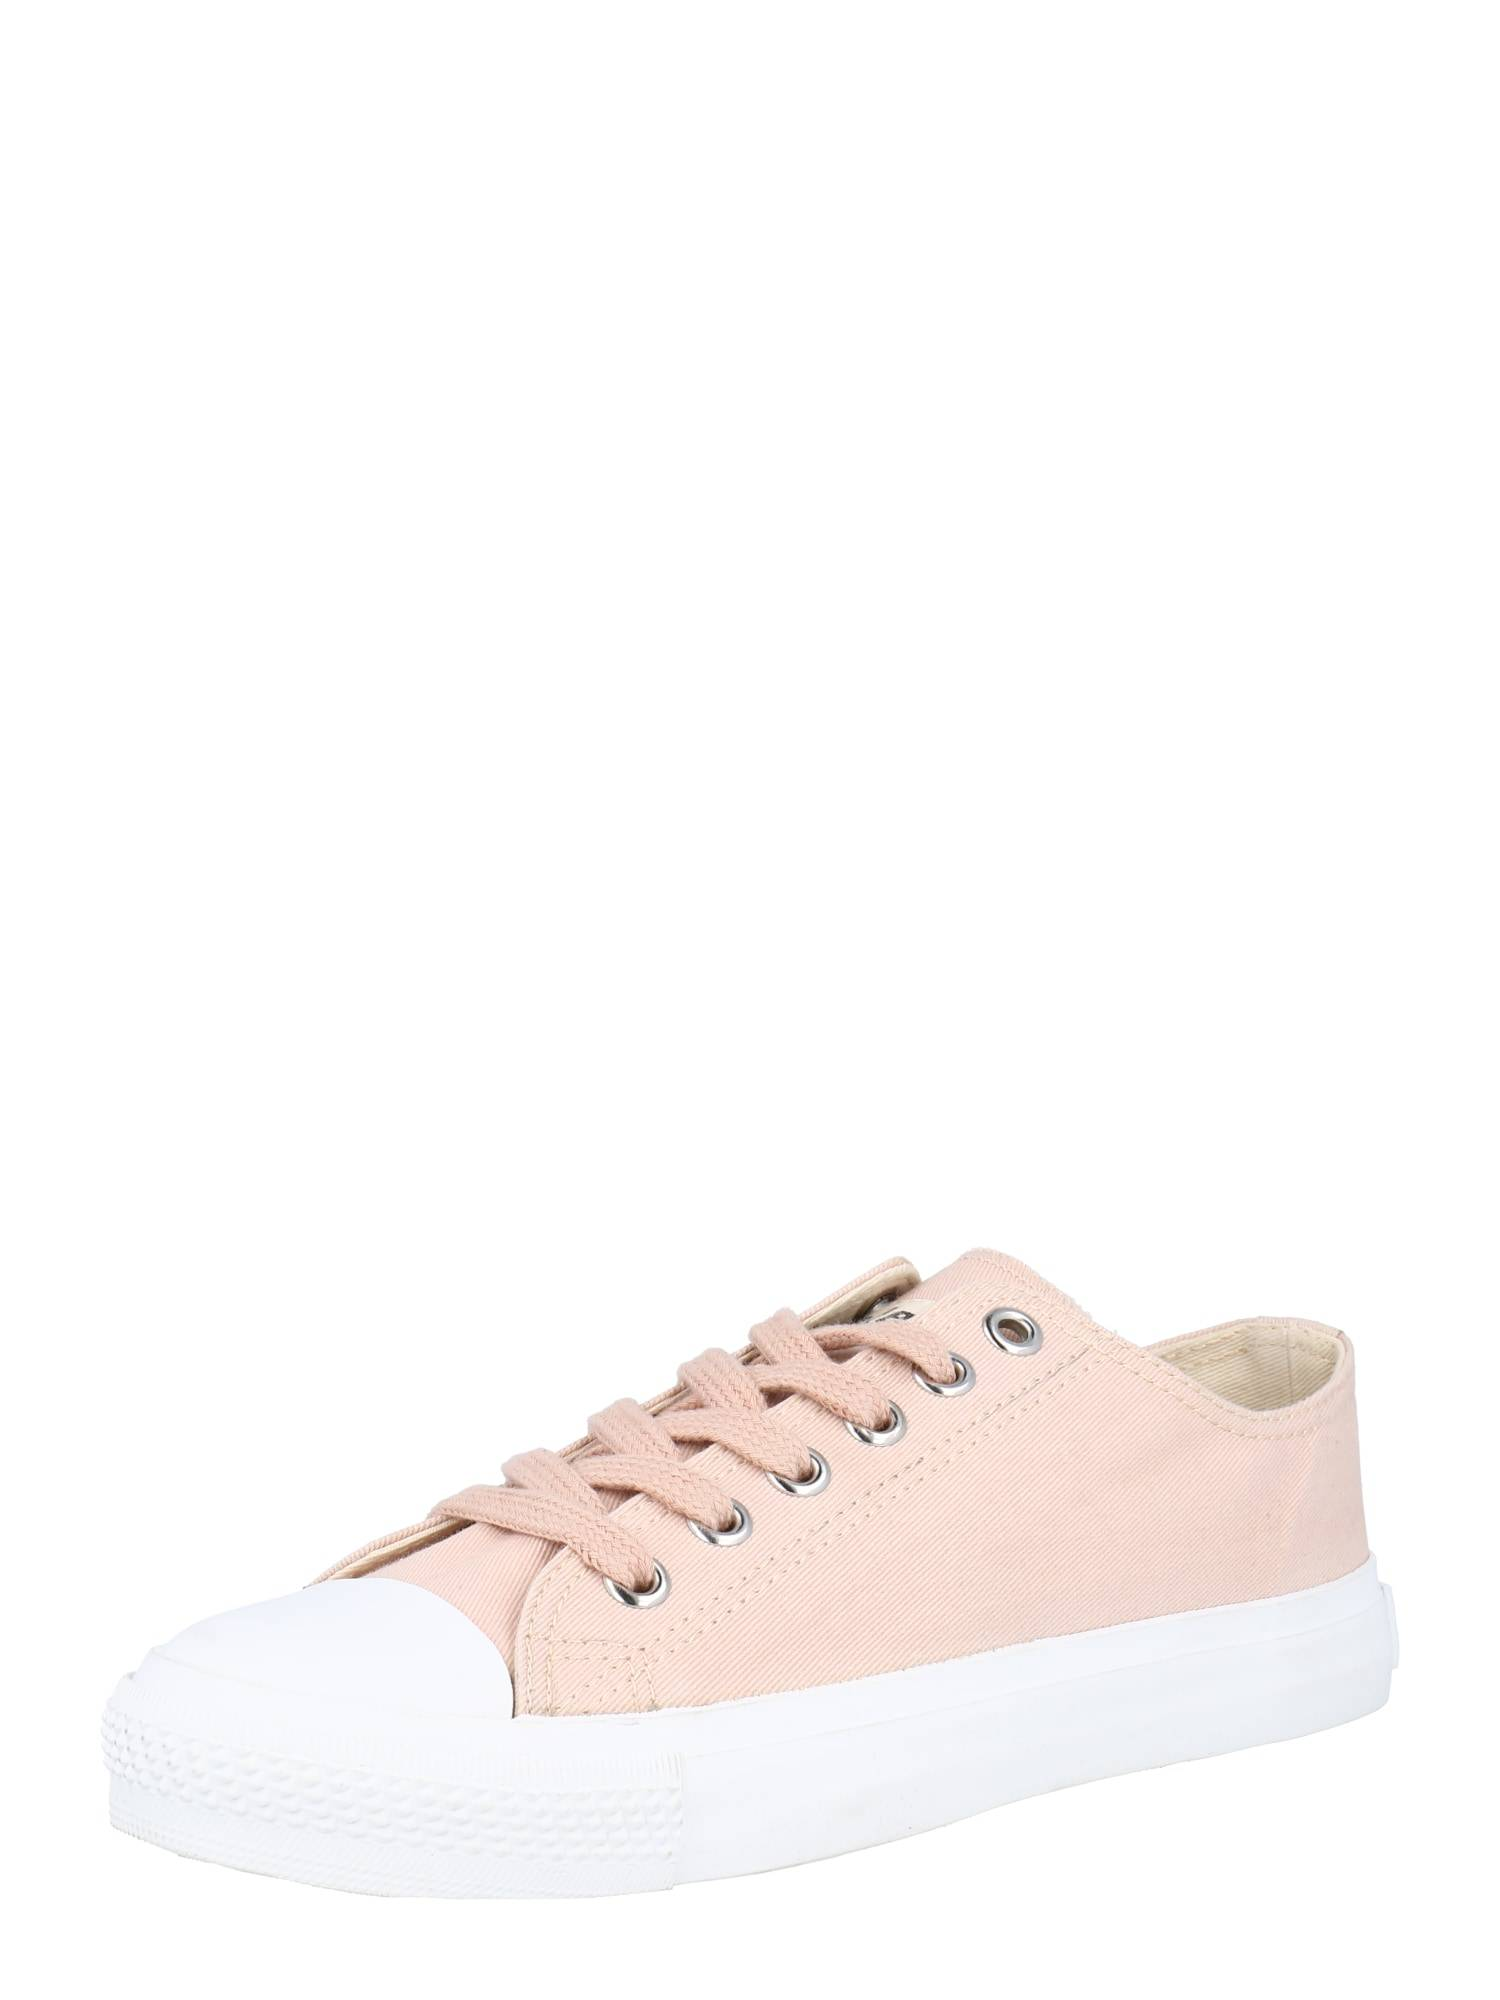 Ethletic Baskets basses 'Fair Trainer White Cap Low Cut'  - Rose - Taille: 39 - male